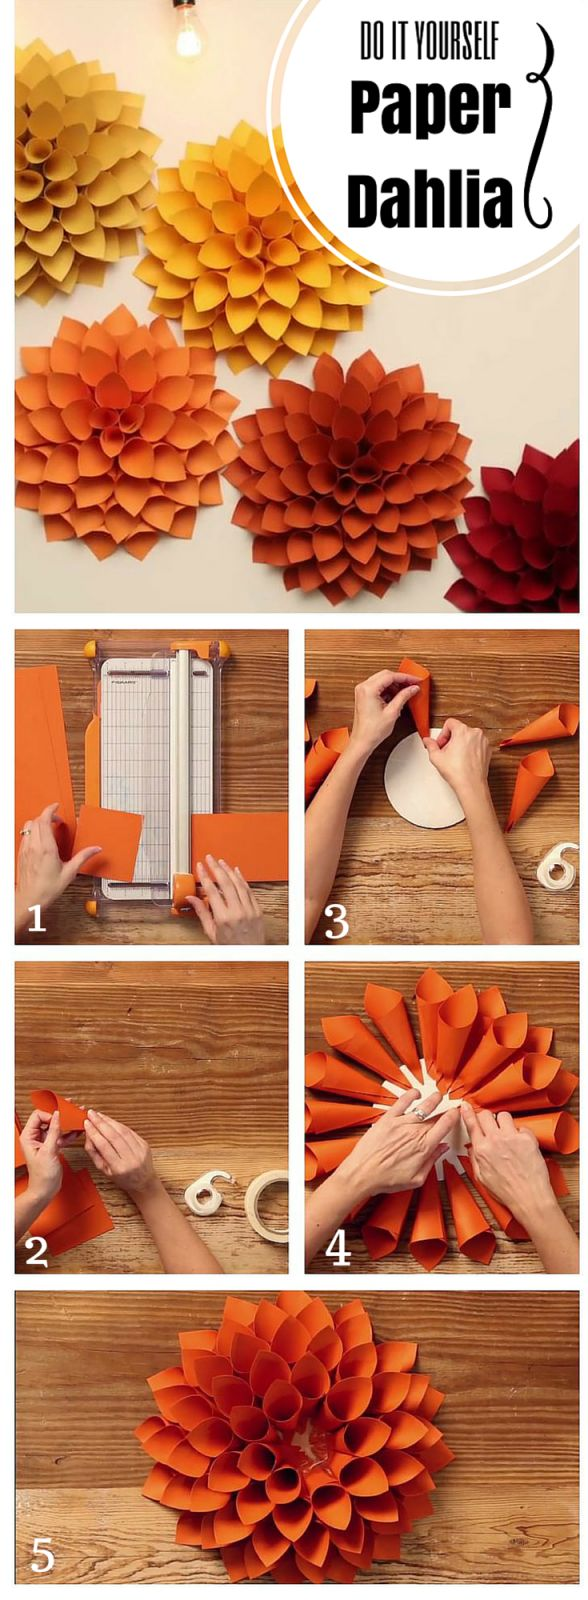 395 best wedding decors images on pinterest wedding reception diy paper dahlia a perfect wedding or party decor solutioingenieria Image collections